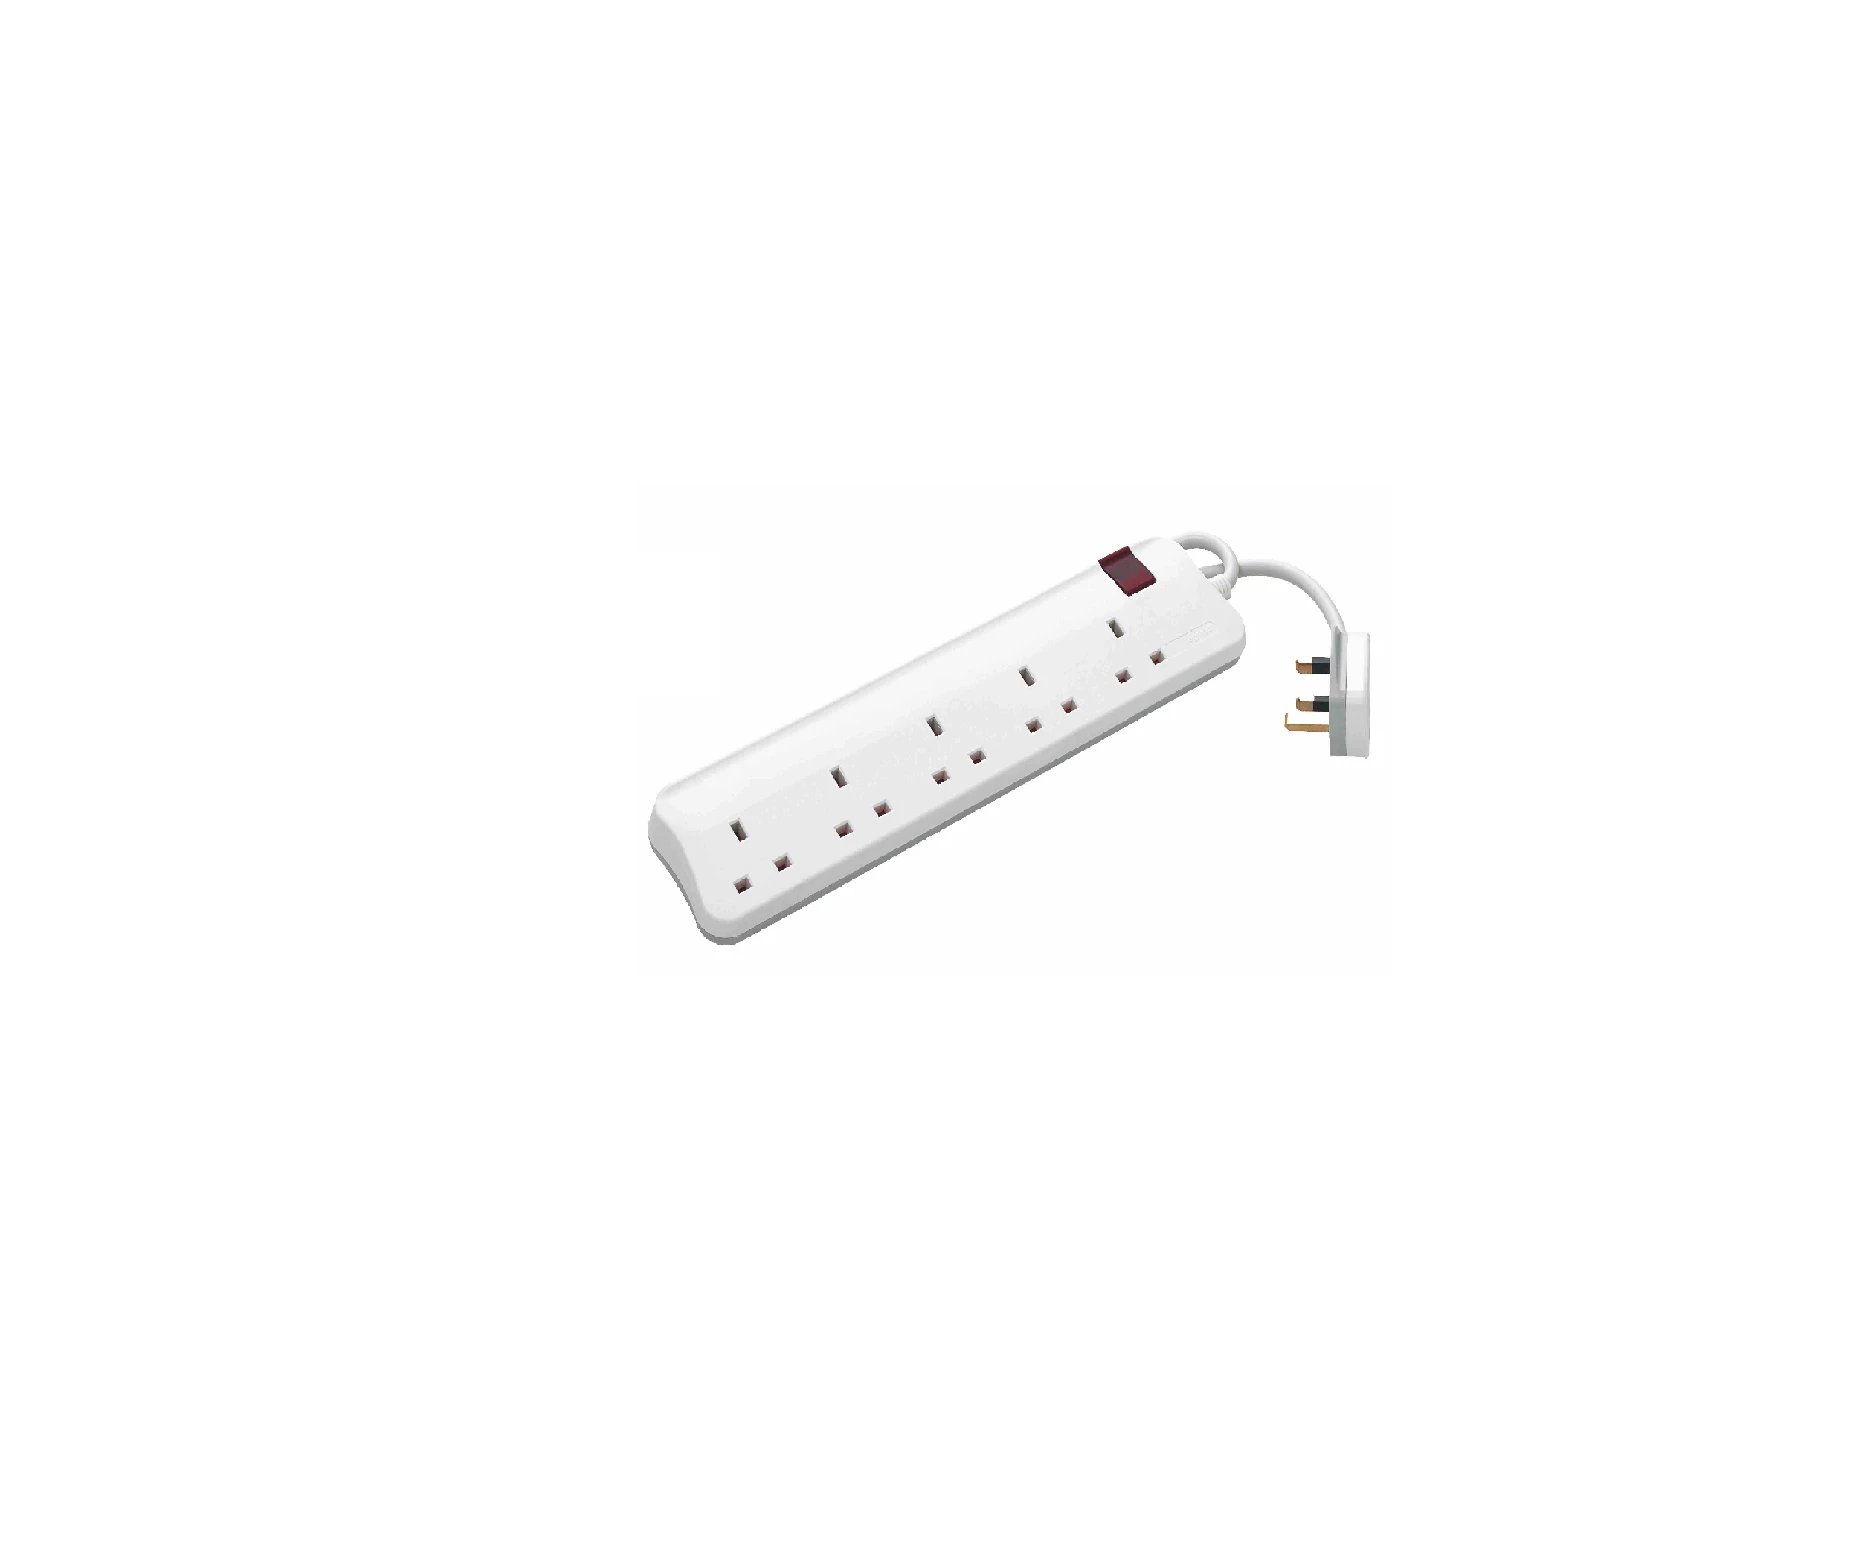 BRITISH STANDARD MULTI-OUTLET EXTENSION - 4X2P+E - ONE SWITCH PER CORD - 3 M COR